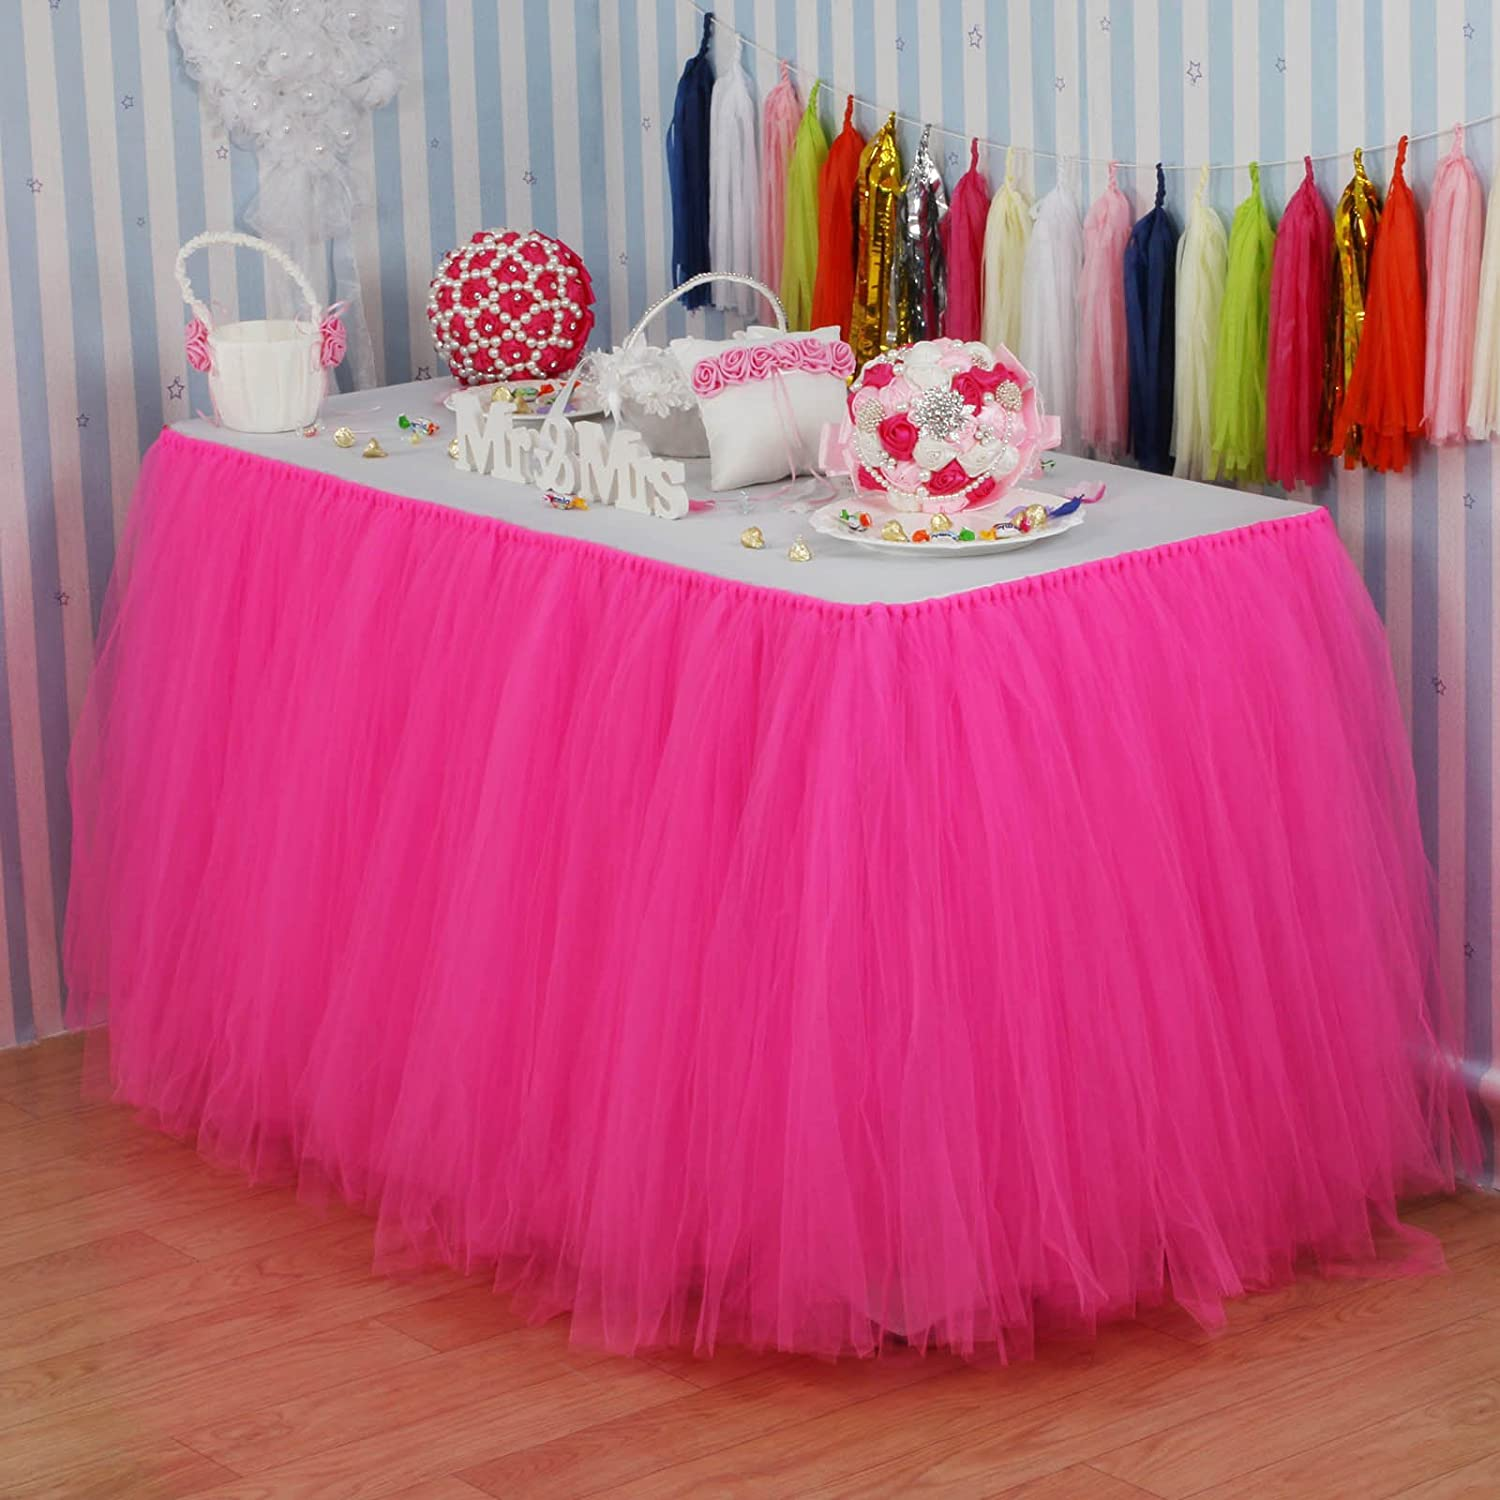 Amazon.com: Vlovelife Hot Pink Tulle Table Skirt Tutu Tableware ...